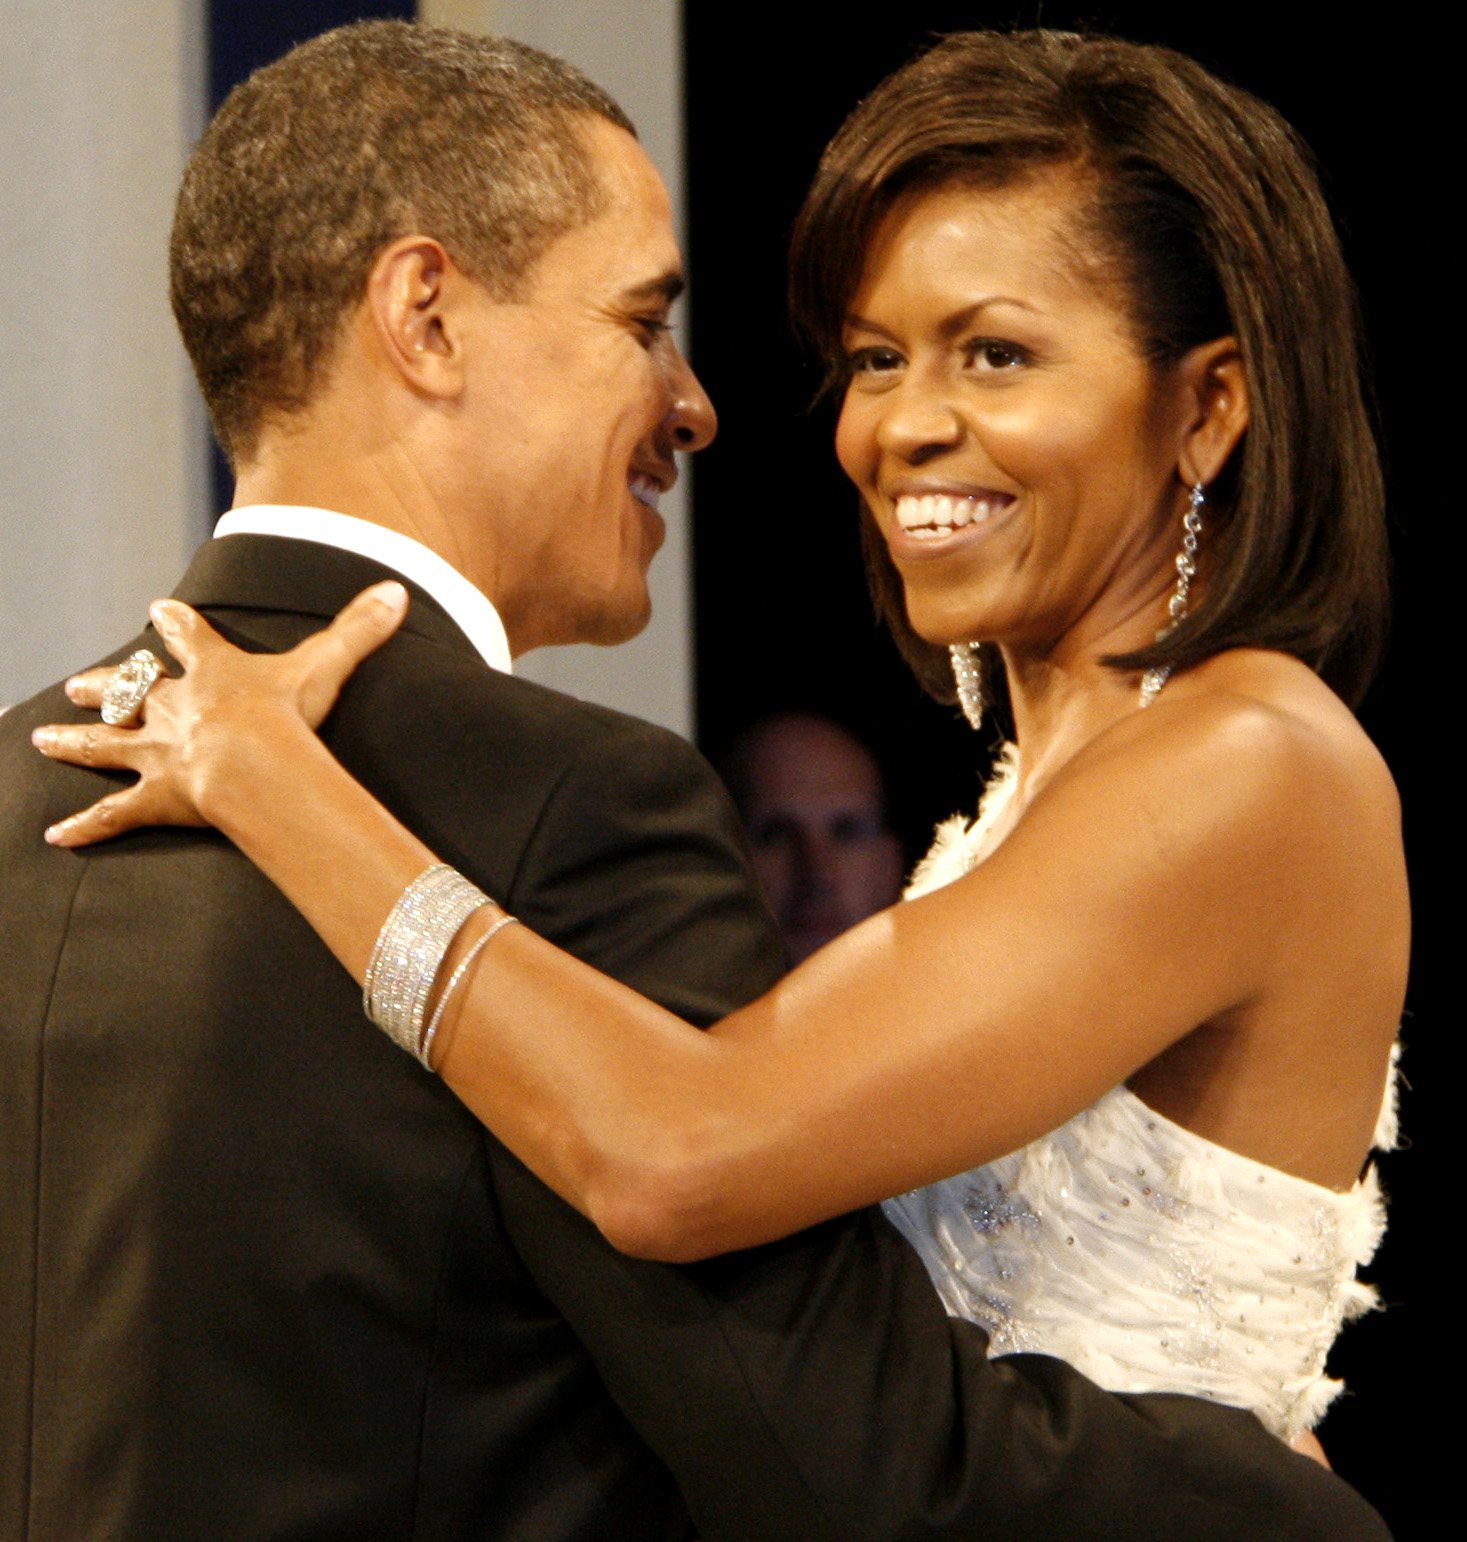 Barack and Michelle Obama dancing arm-in-arm and smiling. She is wearing a white dress, large ring, long earrings and a bracelet. He is wearing a black tuxedo.